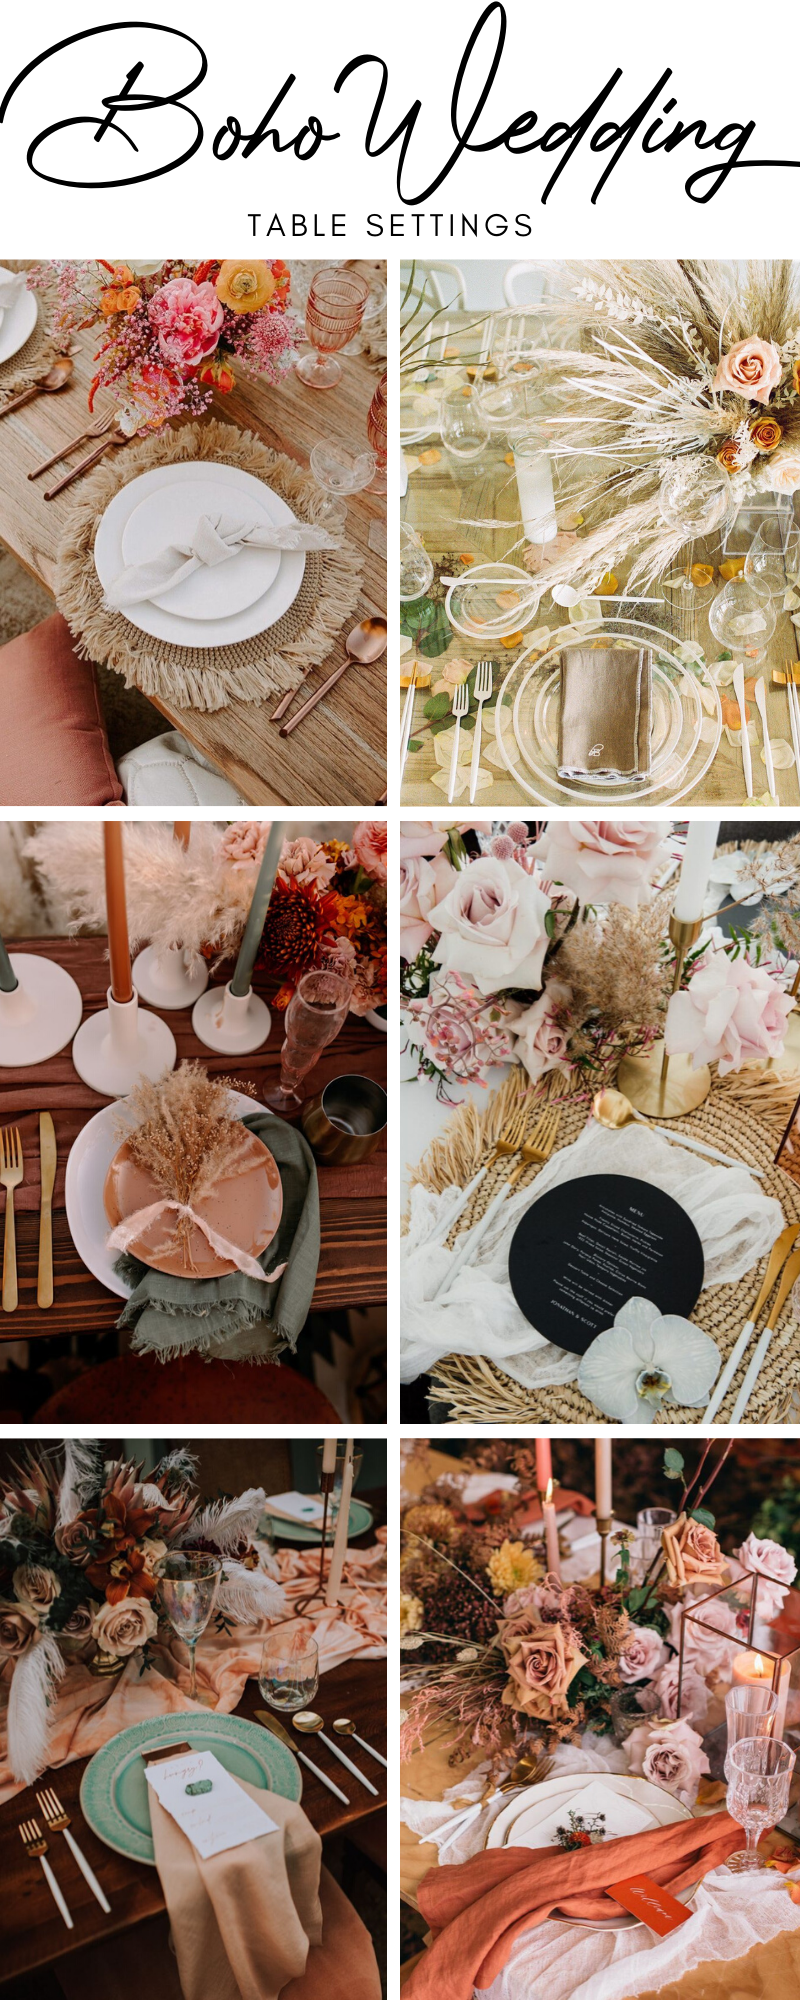 Boho Wedding Table Settings